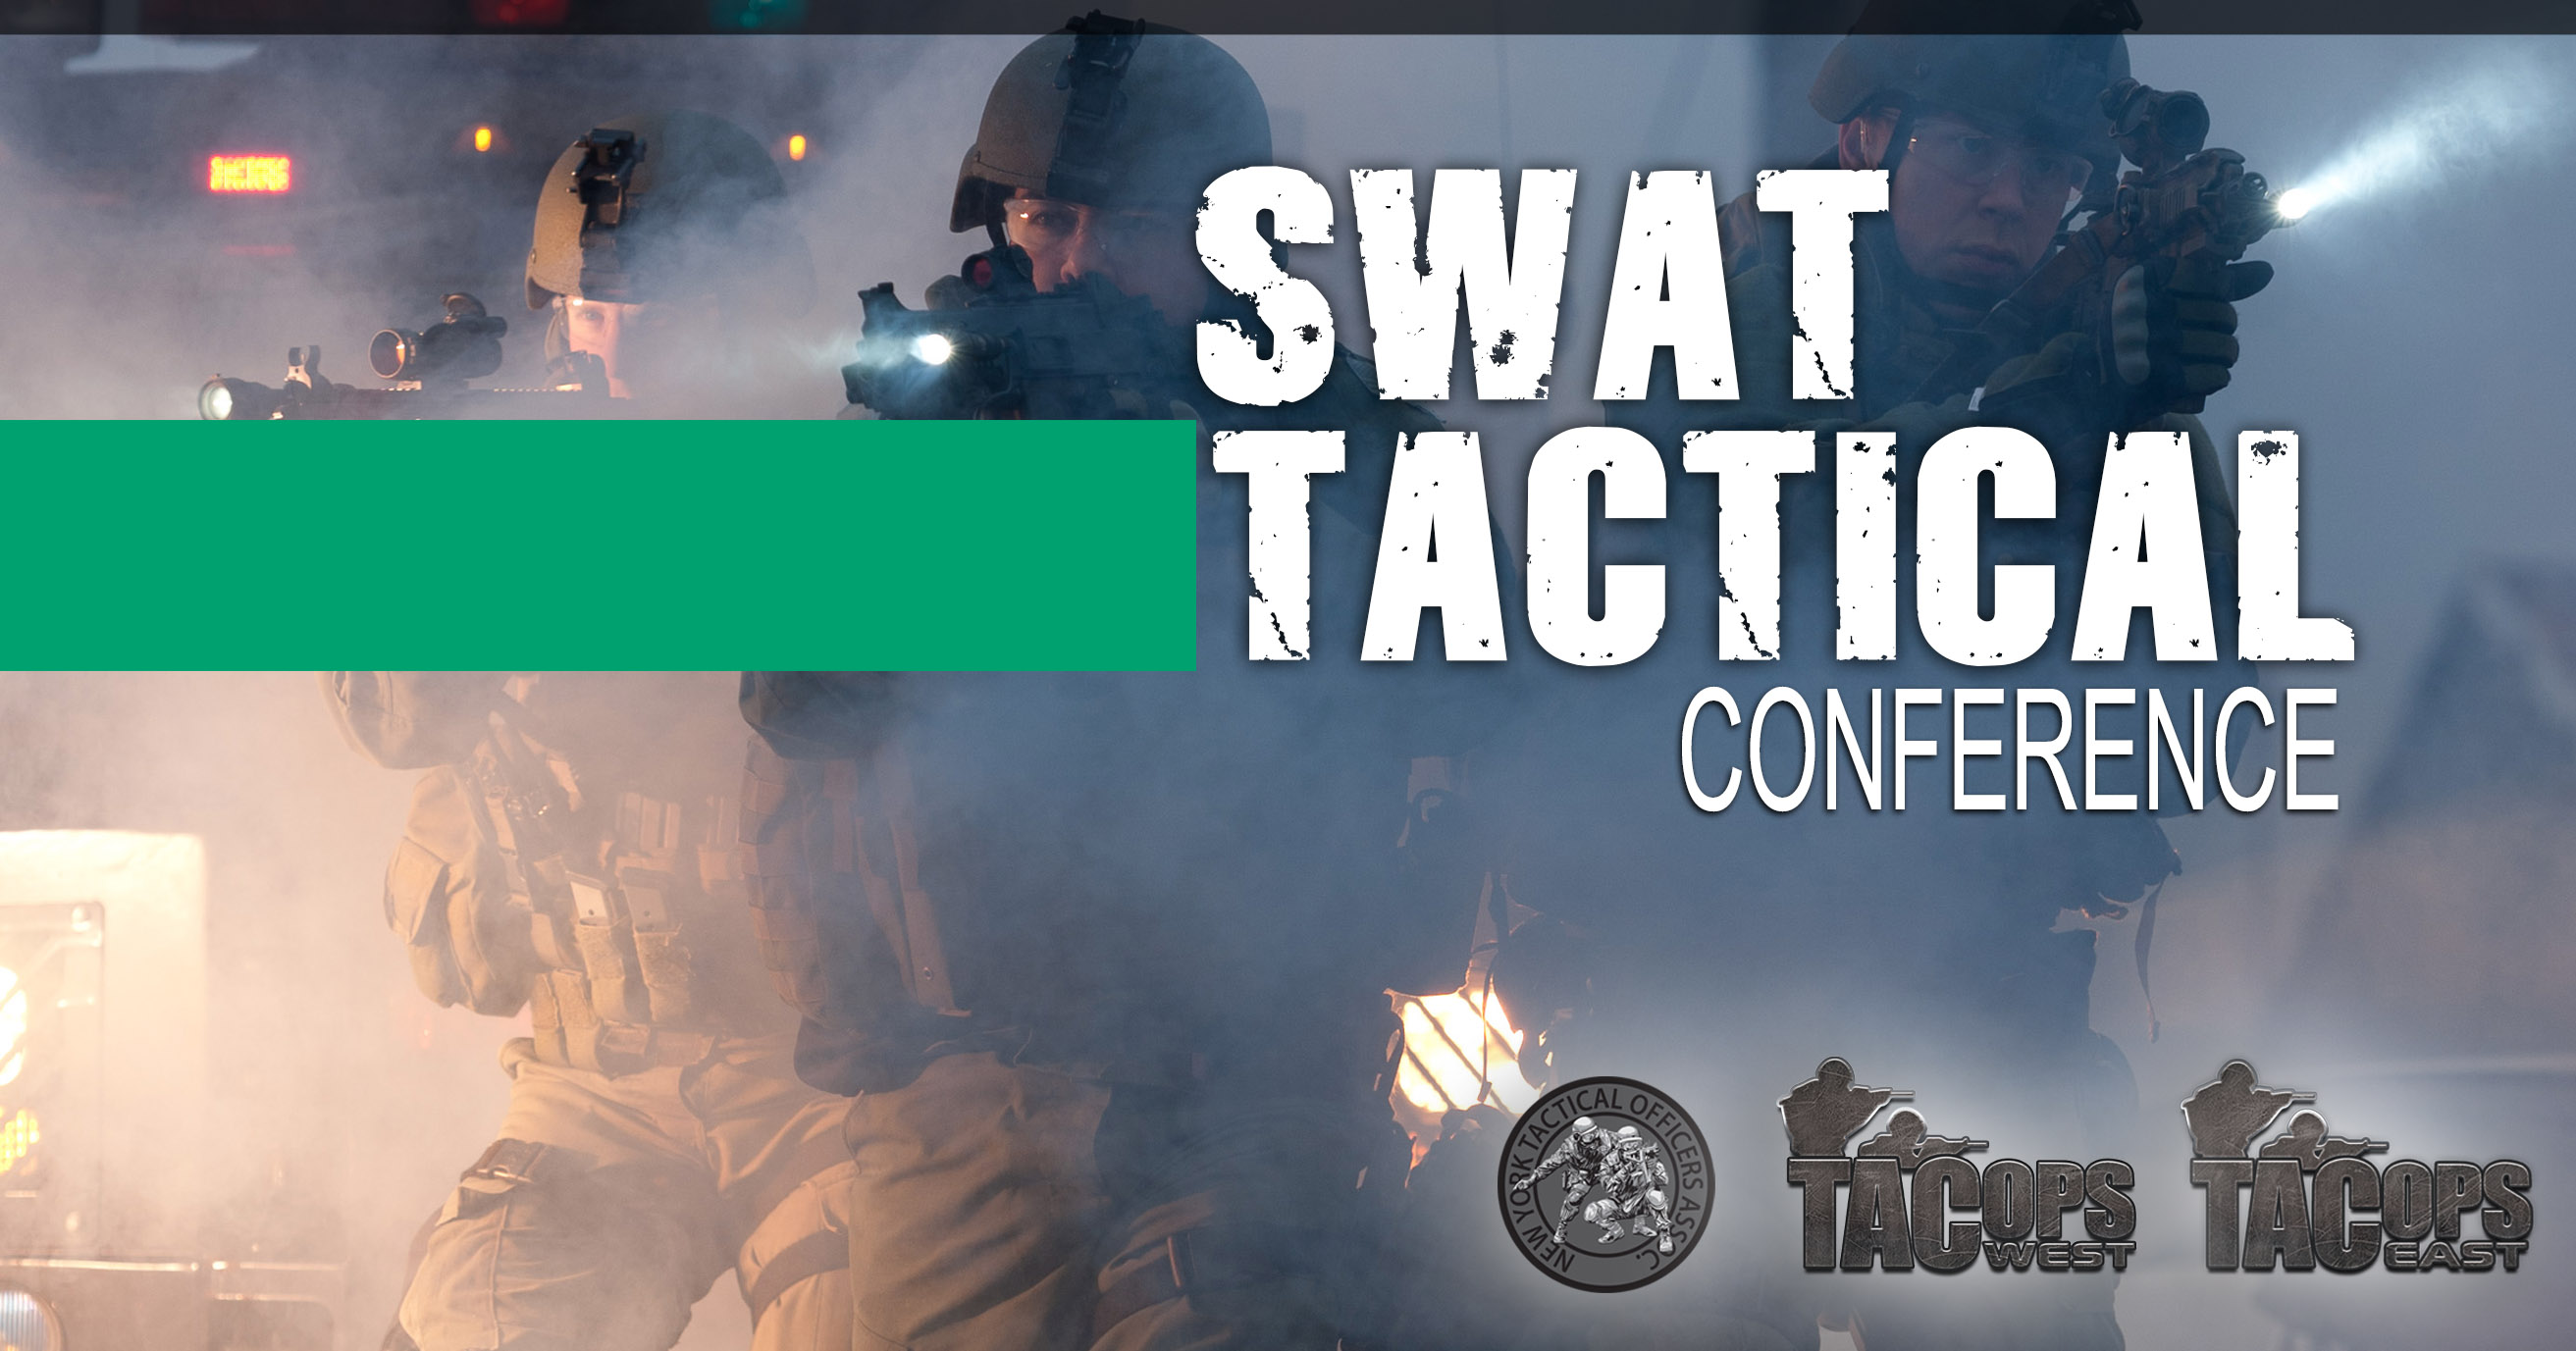 2021 TacOps East S.W.A.T. Tactical Training Conference & Expo